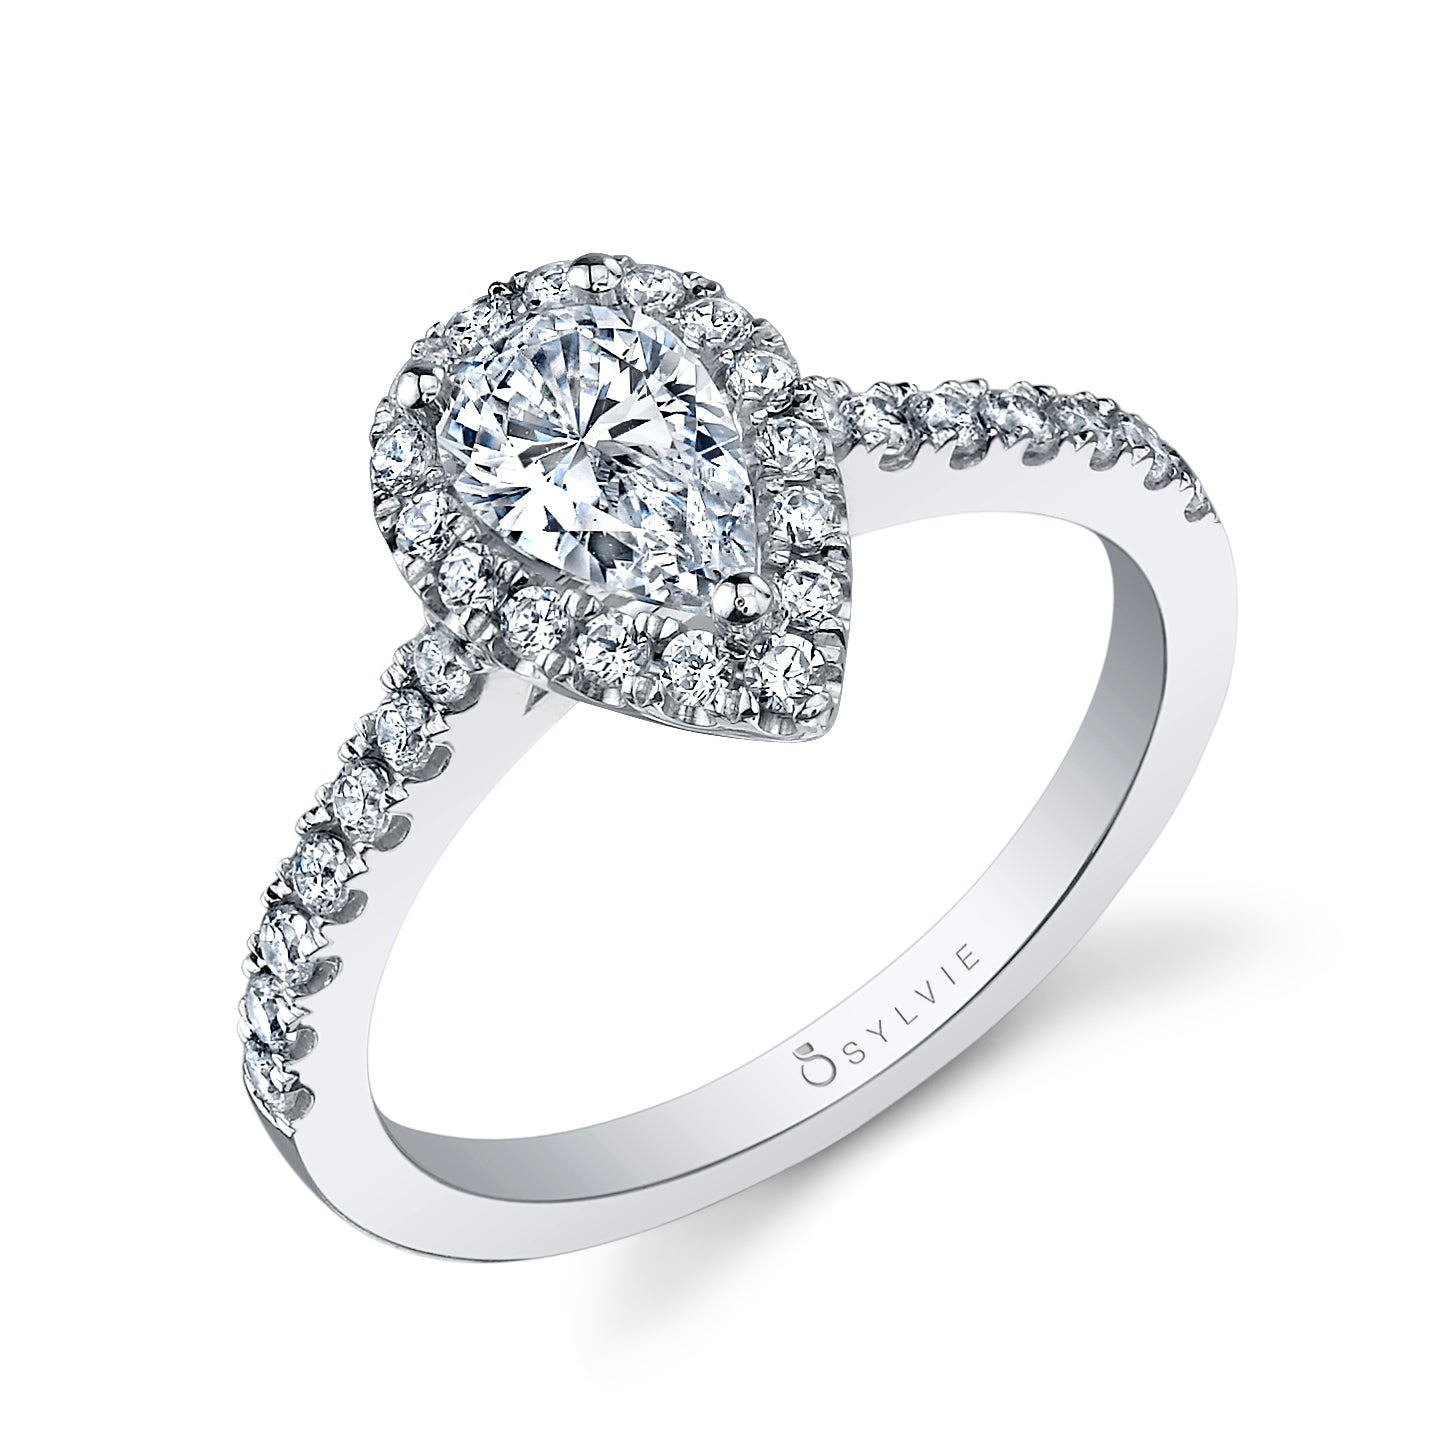 18K White Gold Pear Shaped Halo Engagement Ring Setting